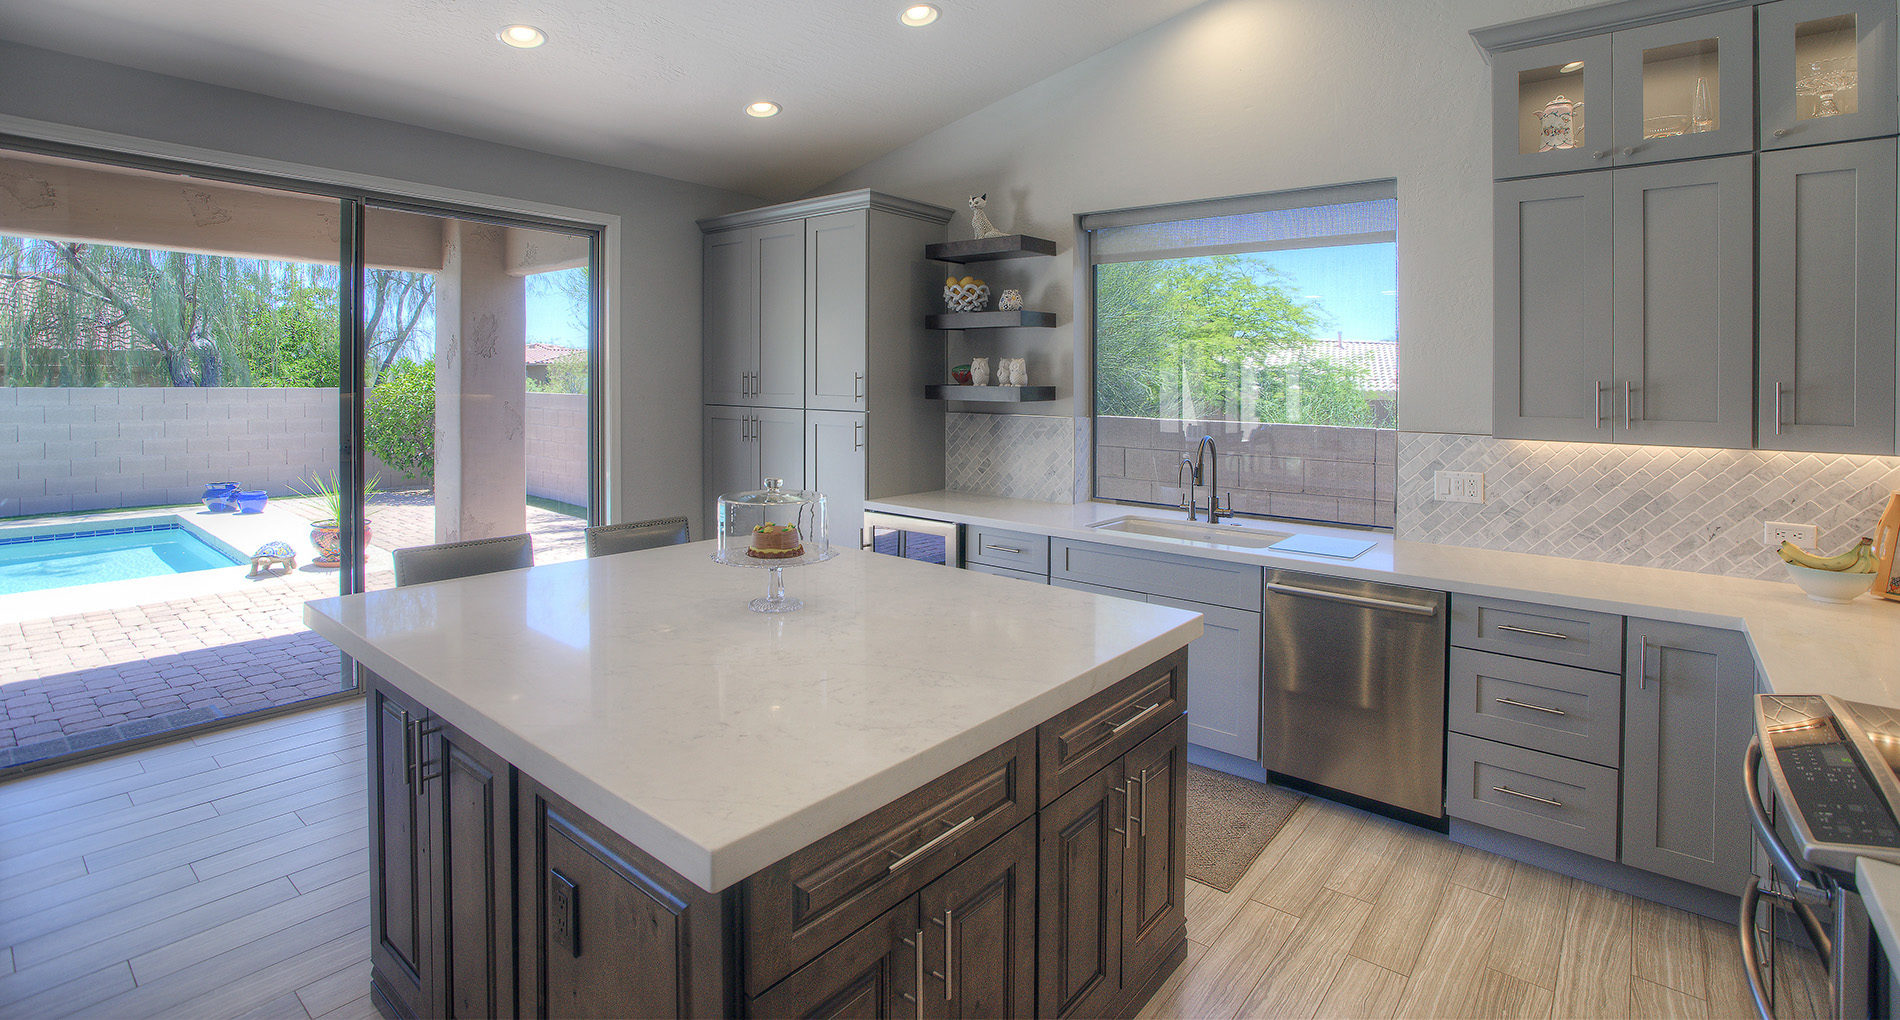 Kitchen Remodeling & Design in Scottsdale | Alair Homes Scottsdale